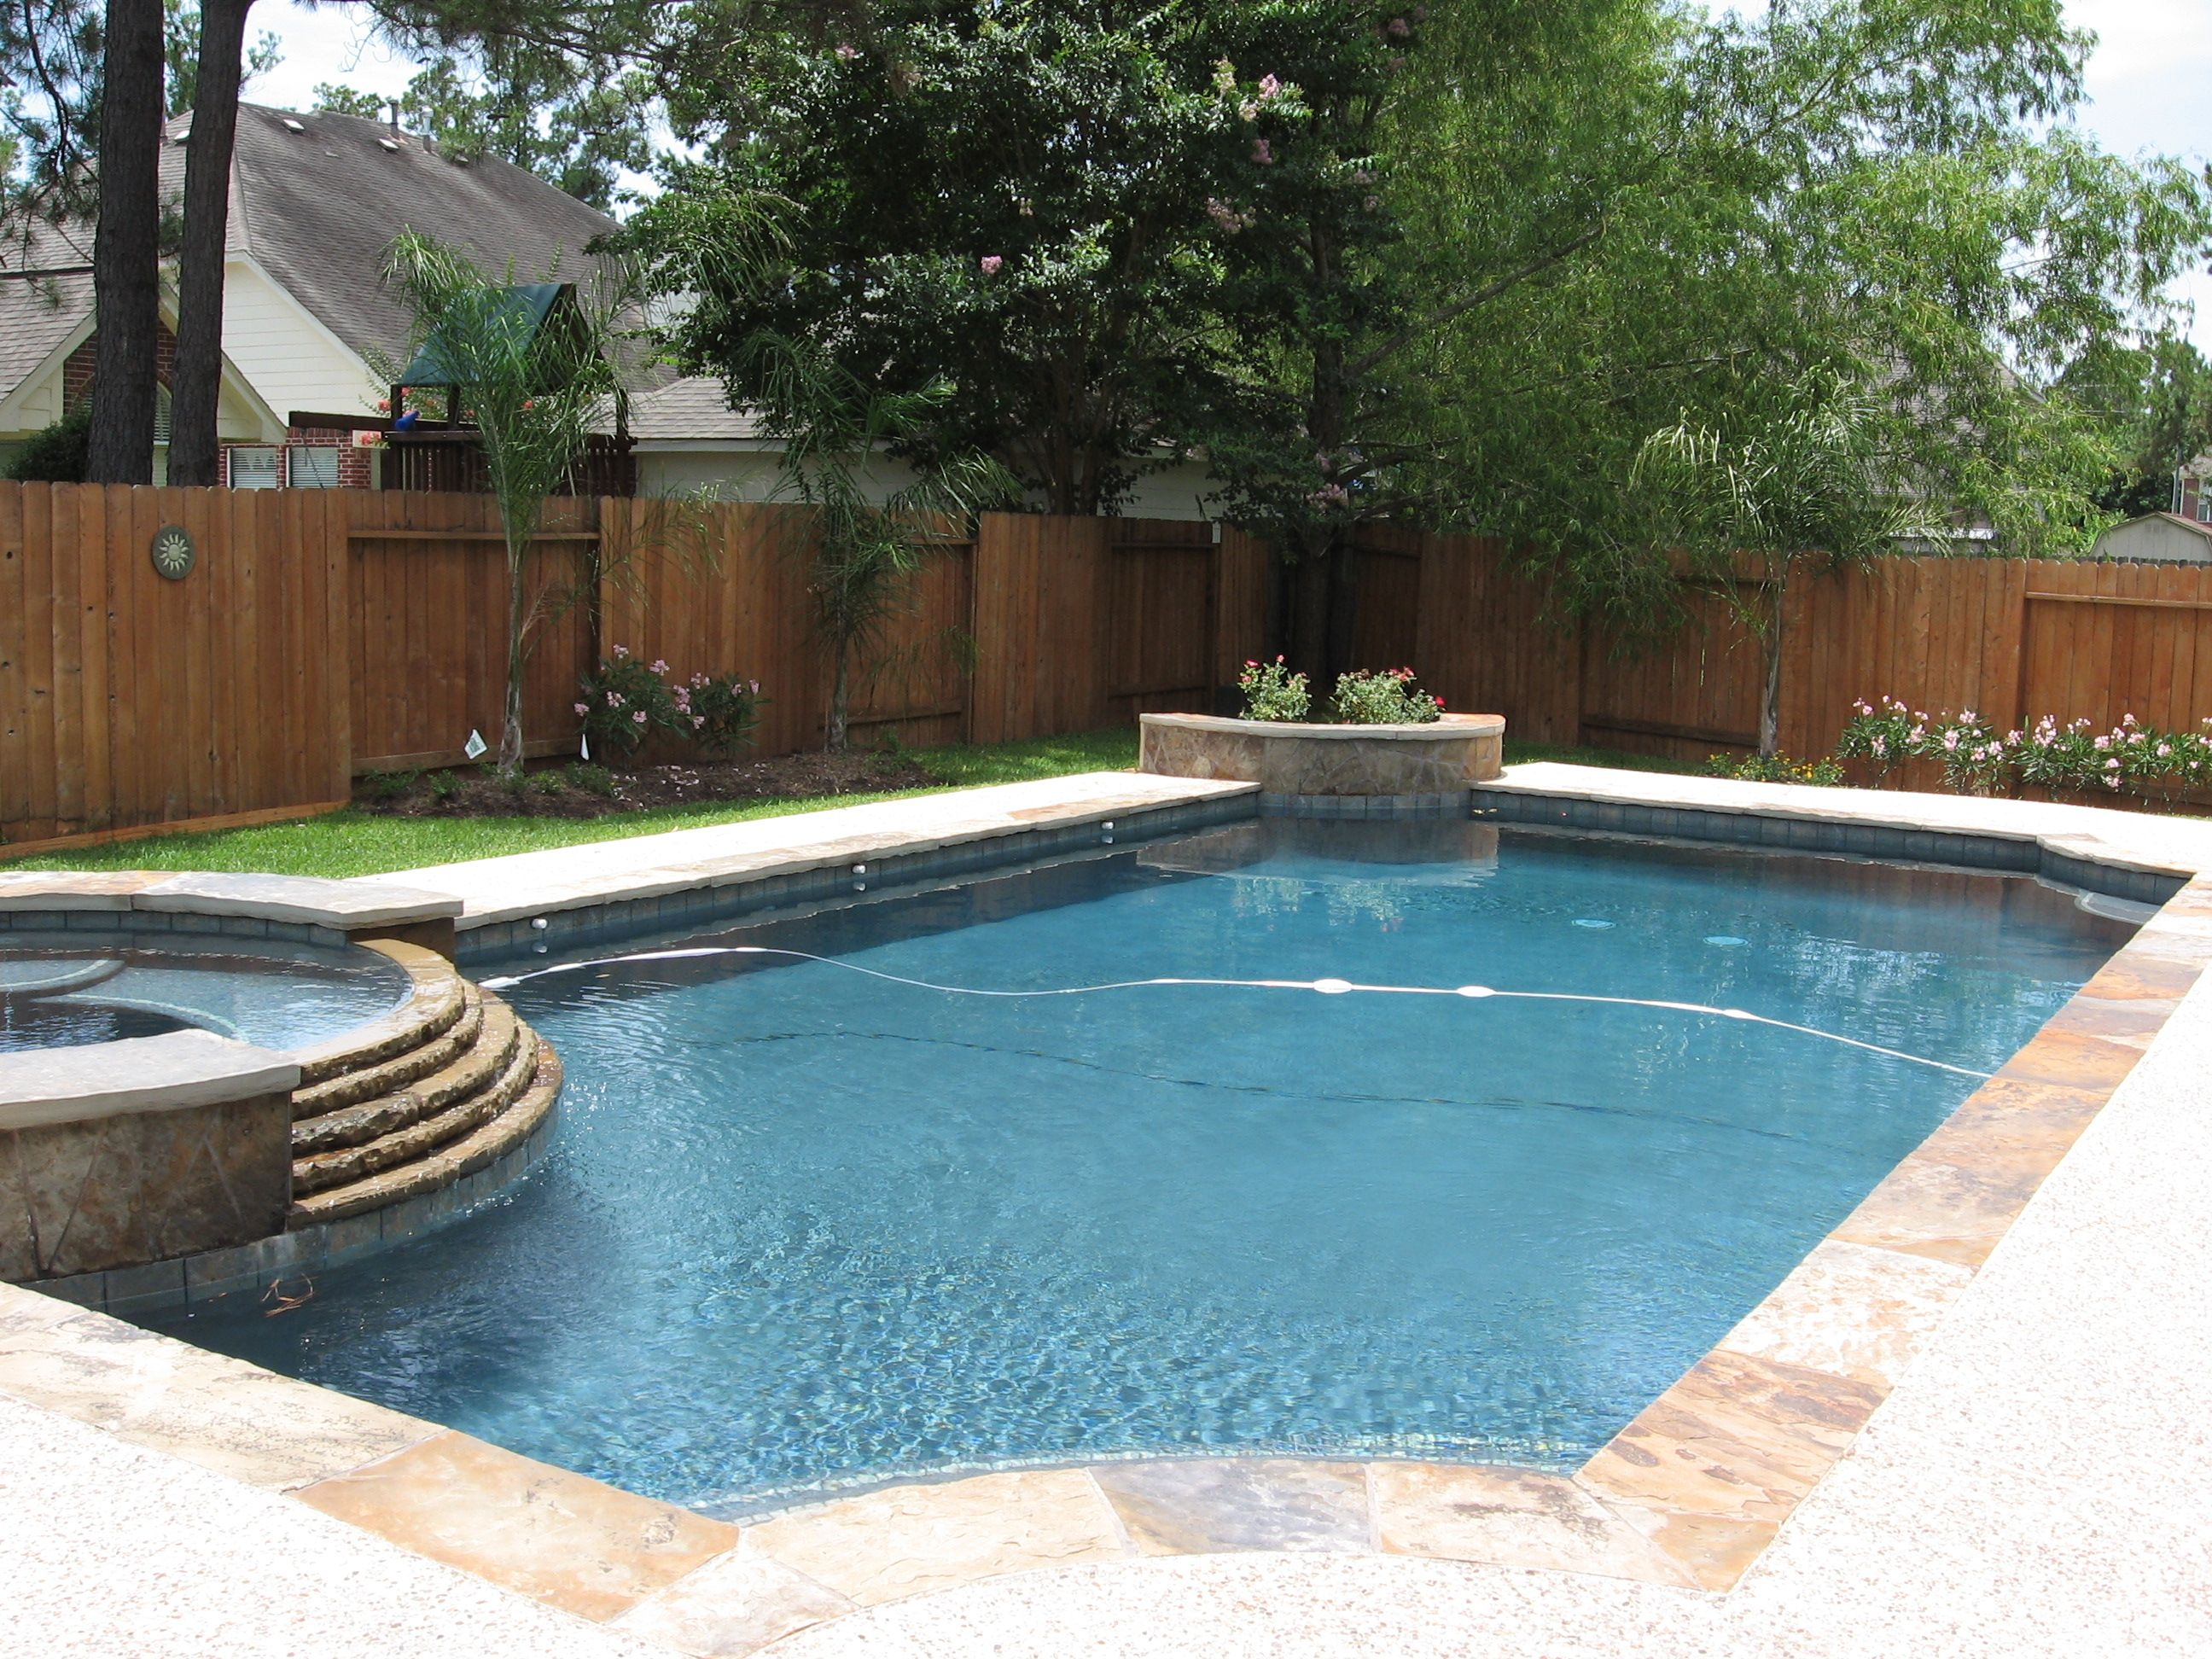 Rectangular Pool Landscape Designs rectangle pools gold coast -design pools gold coast#cnt | for